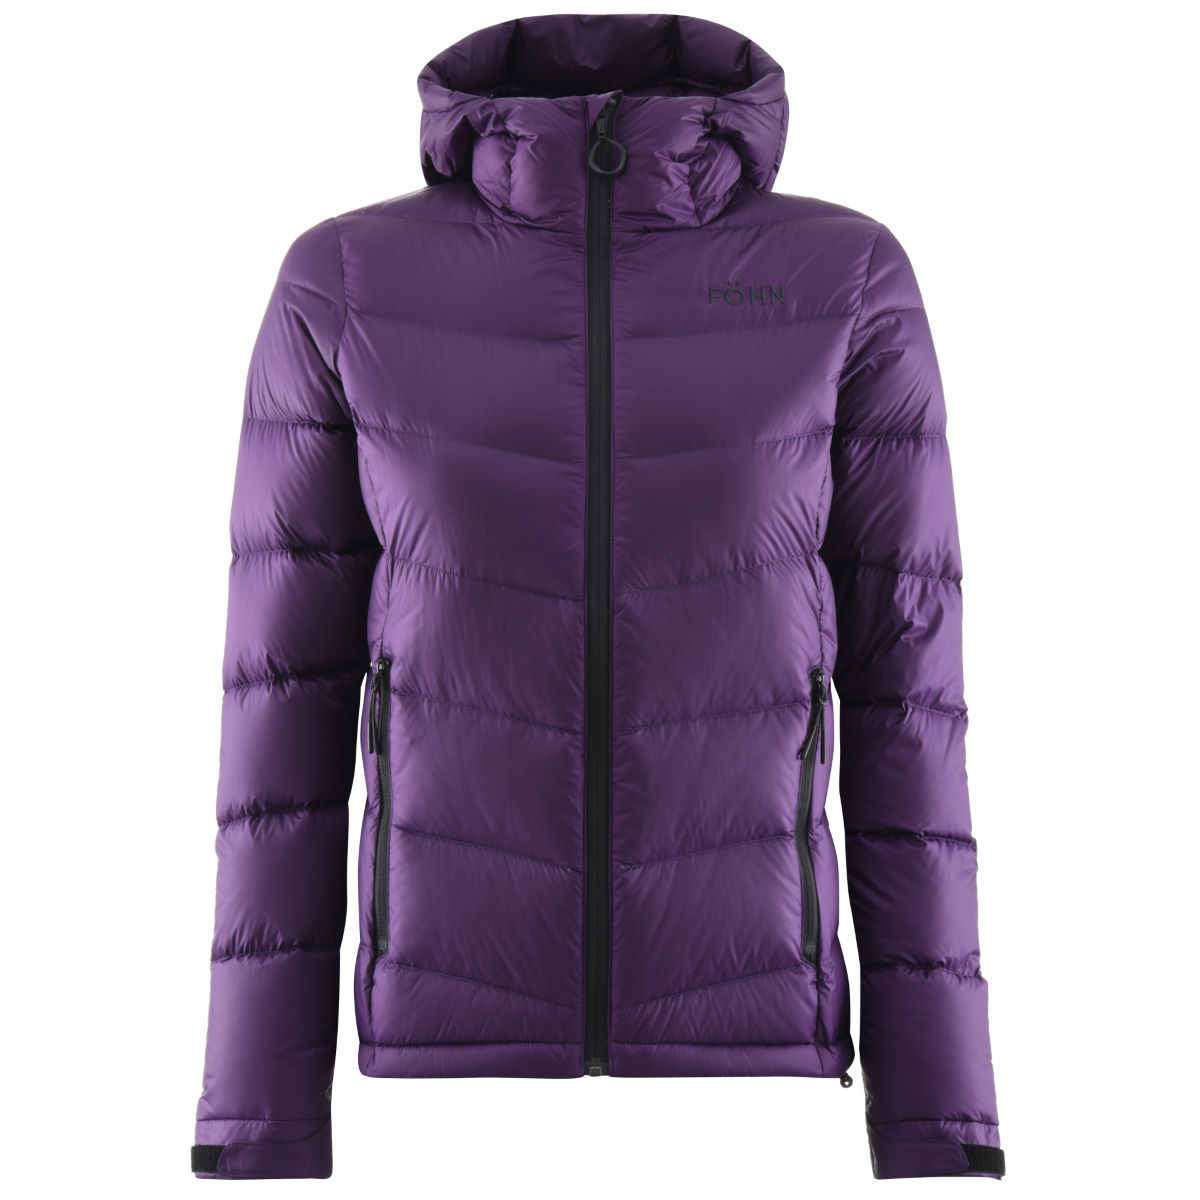 Fohn - Women's Mountain Down Jacket - UK 10 Mauve | Vestes